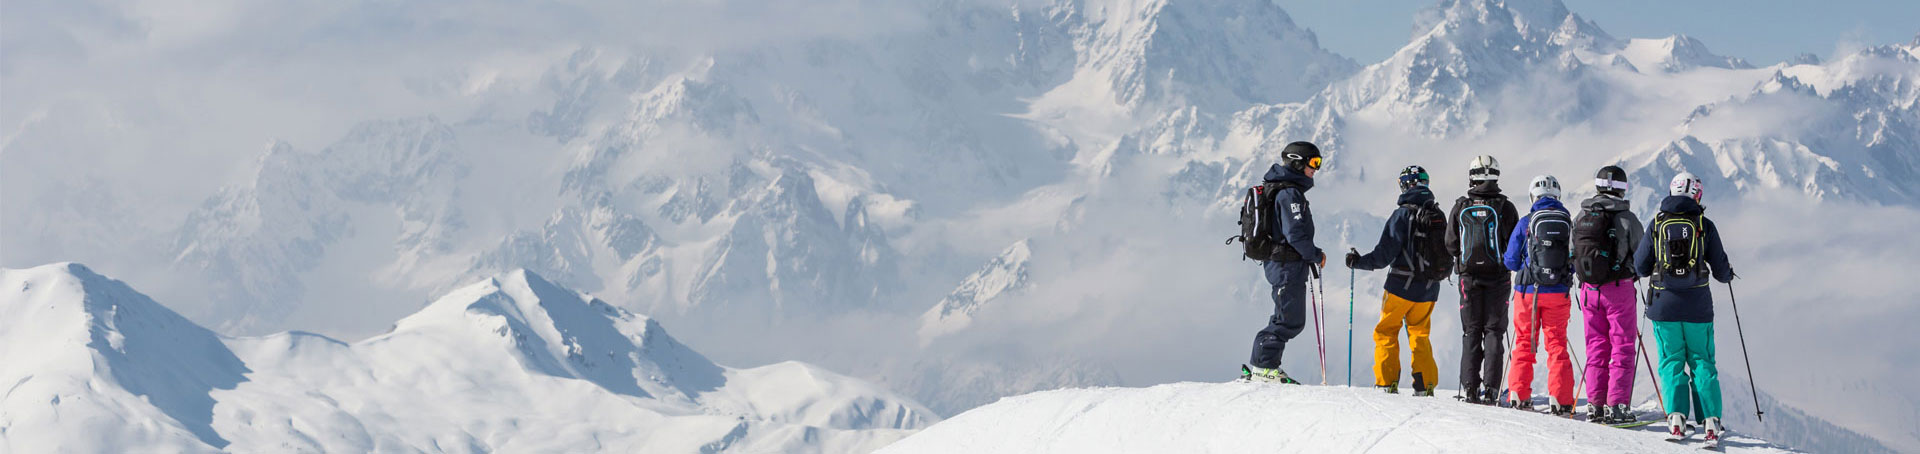 Verbier Covid policy main image